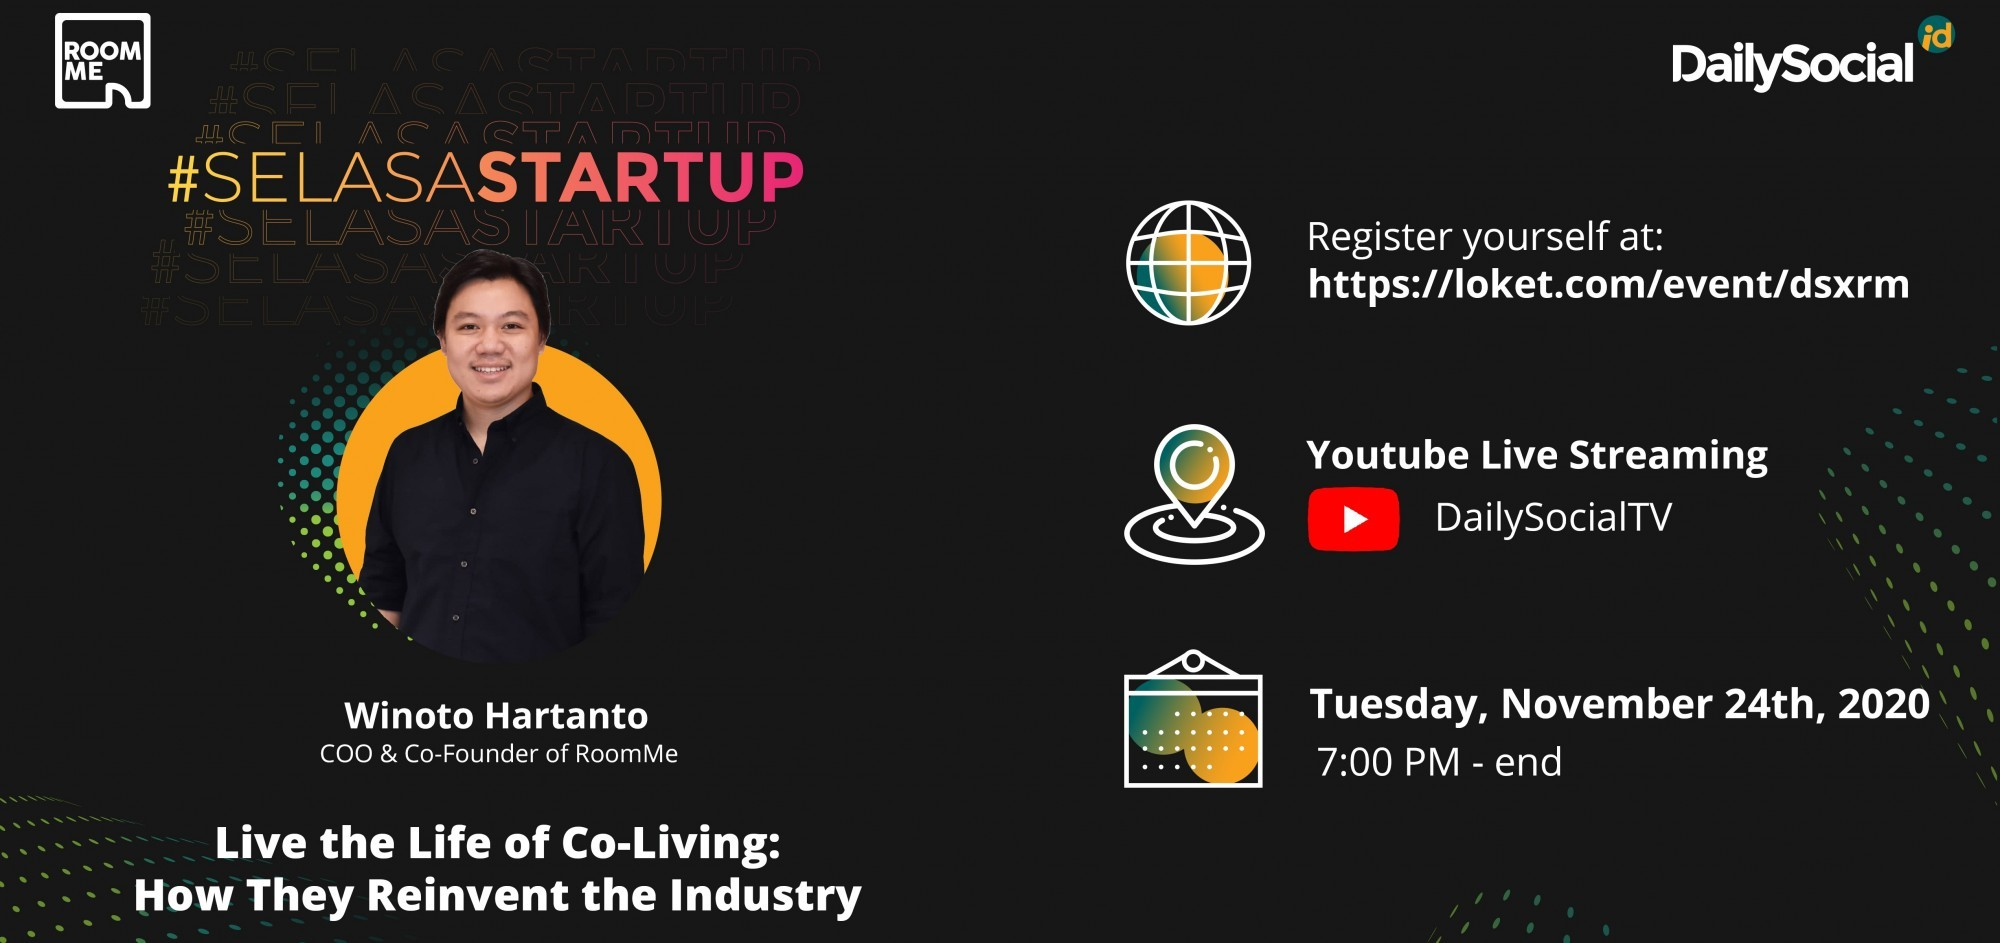 #SelasaStartup Live the Life of Co-Living: How They Reinvent the Industry